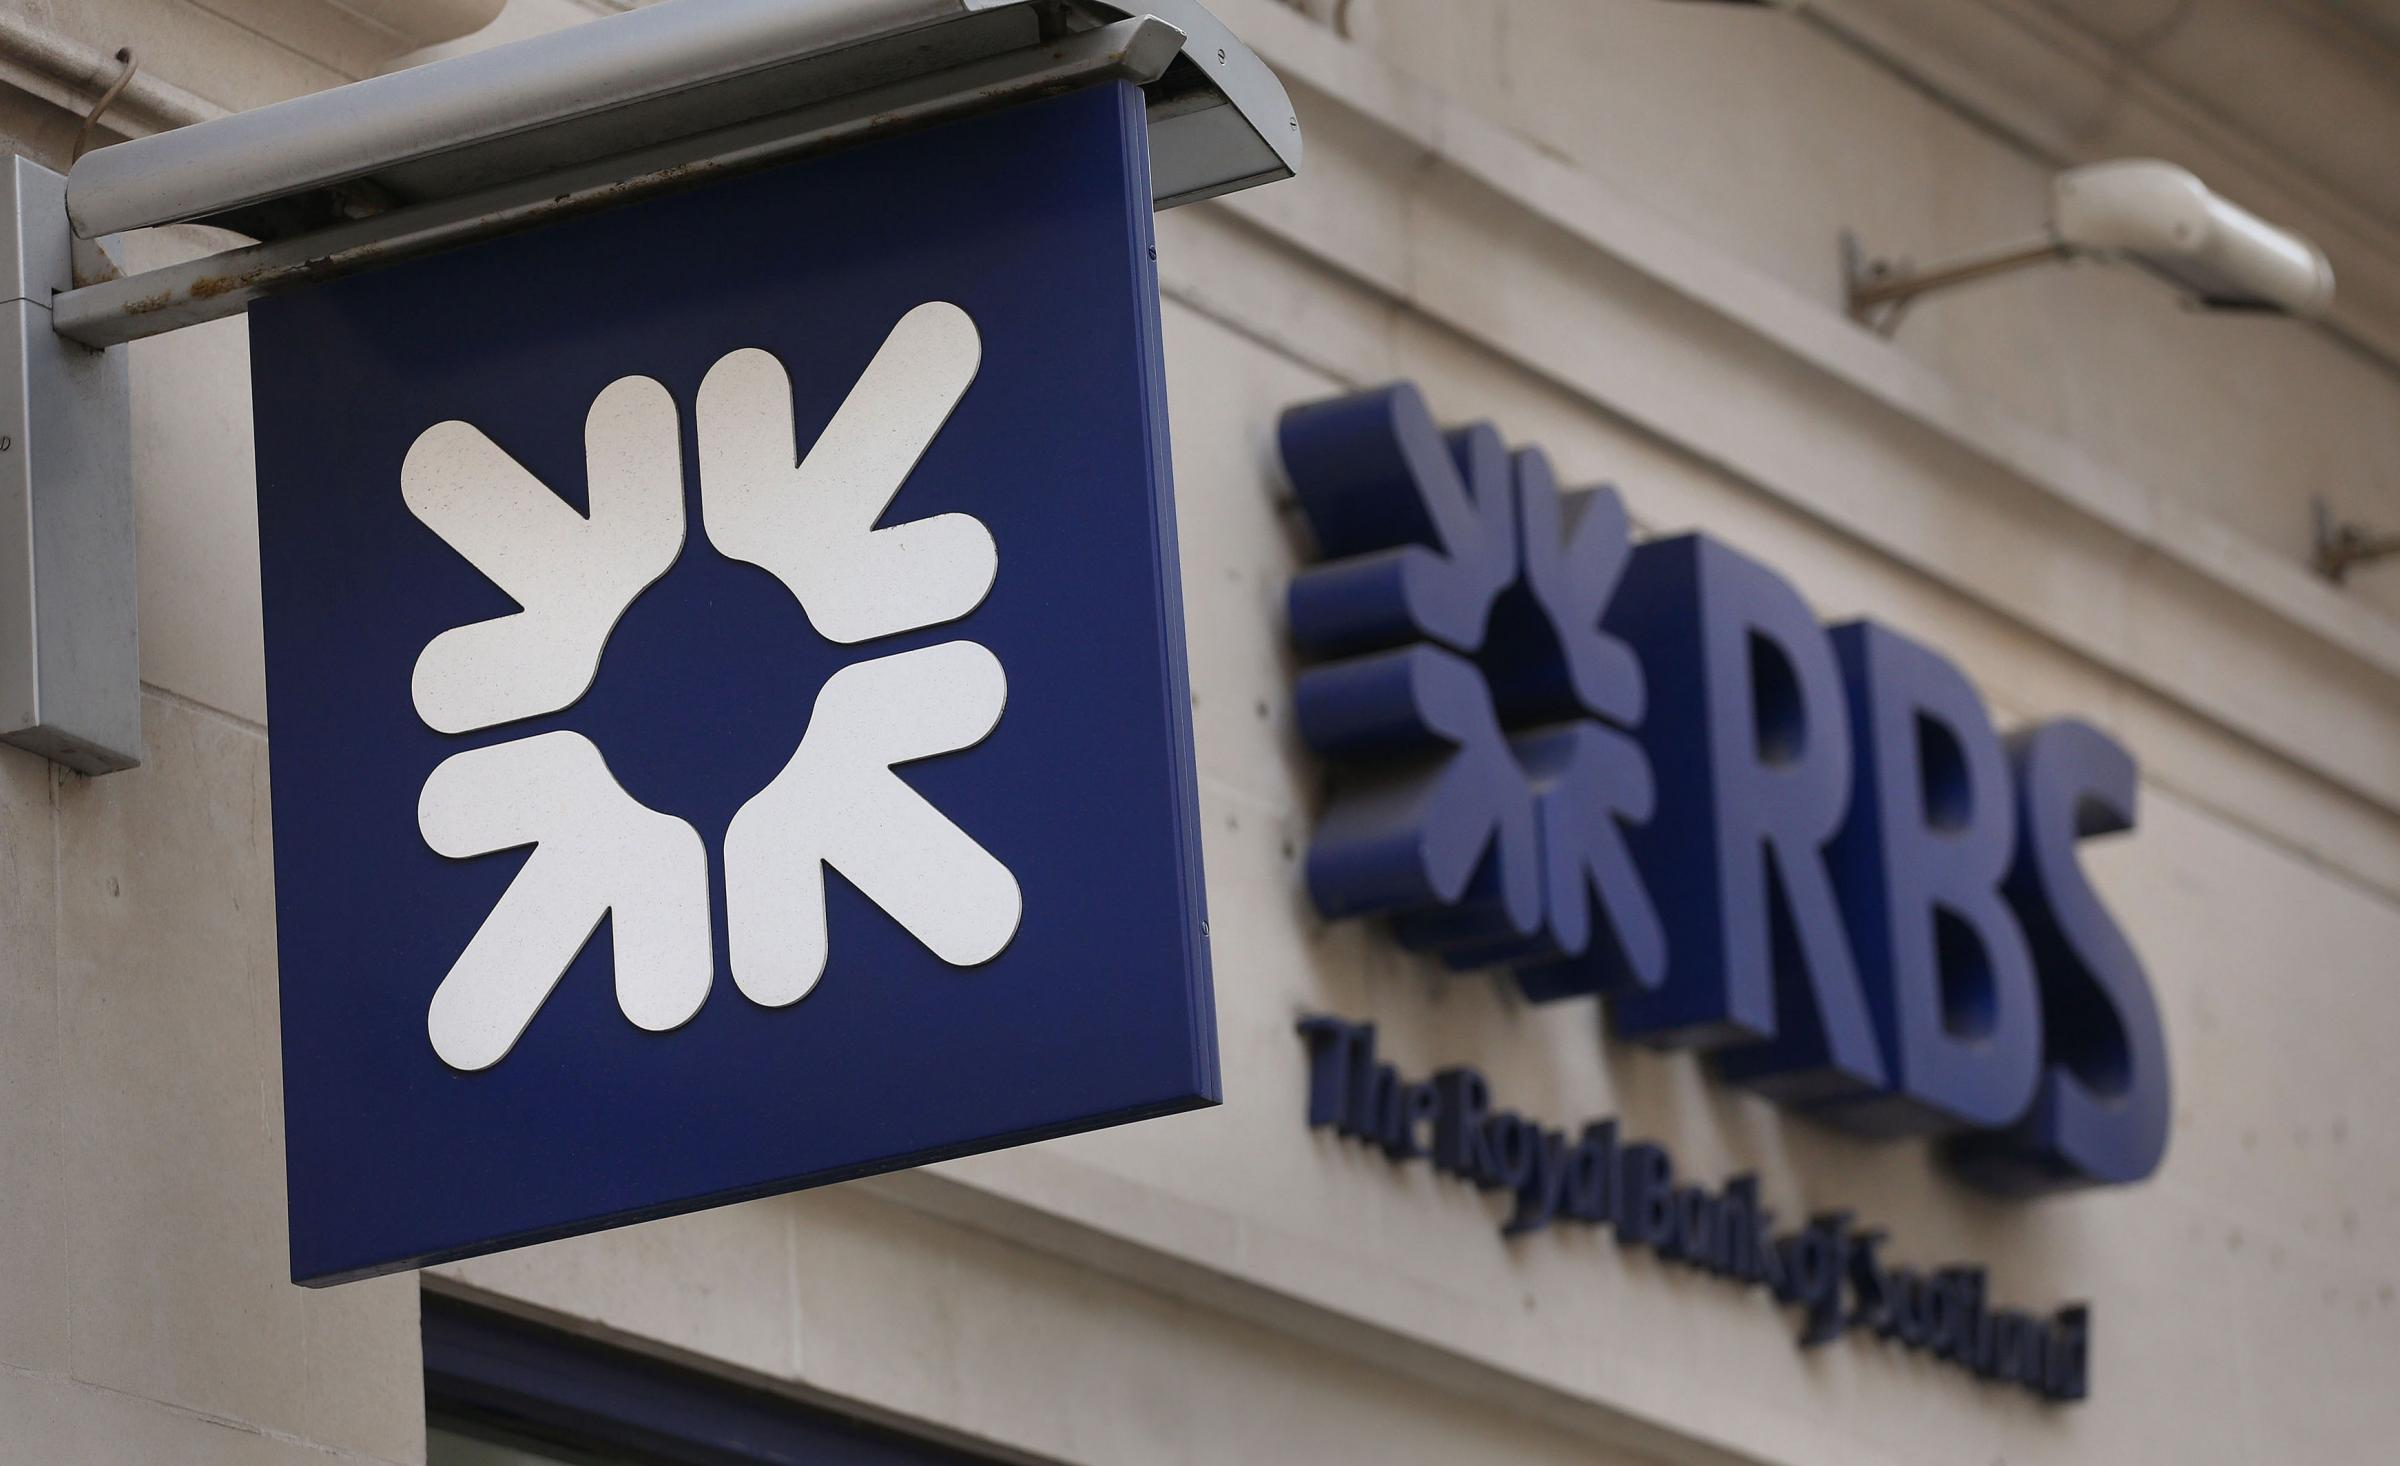 RBS branches in rural areas of Scotland are under threat